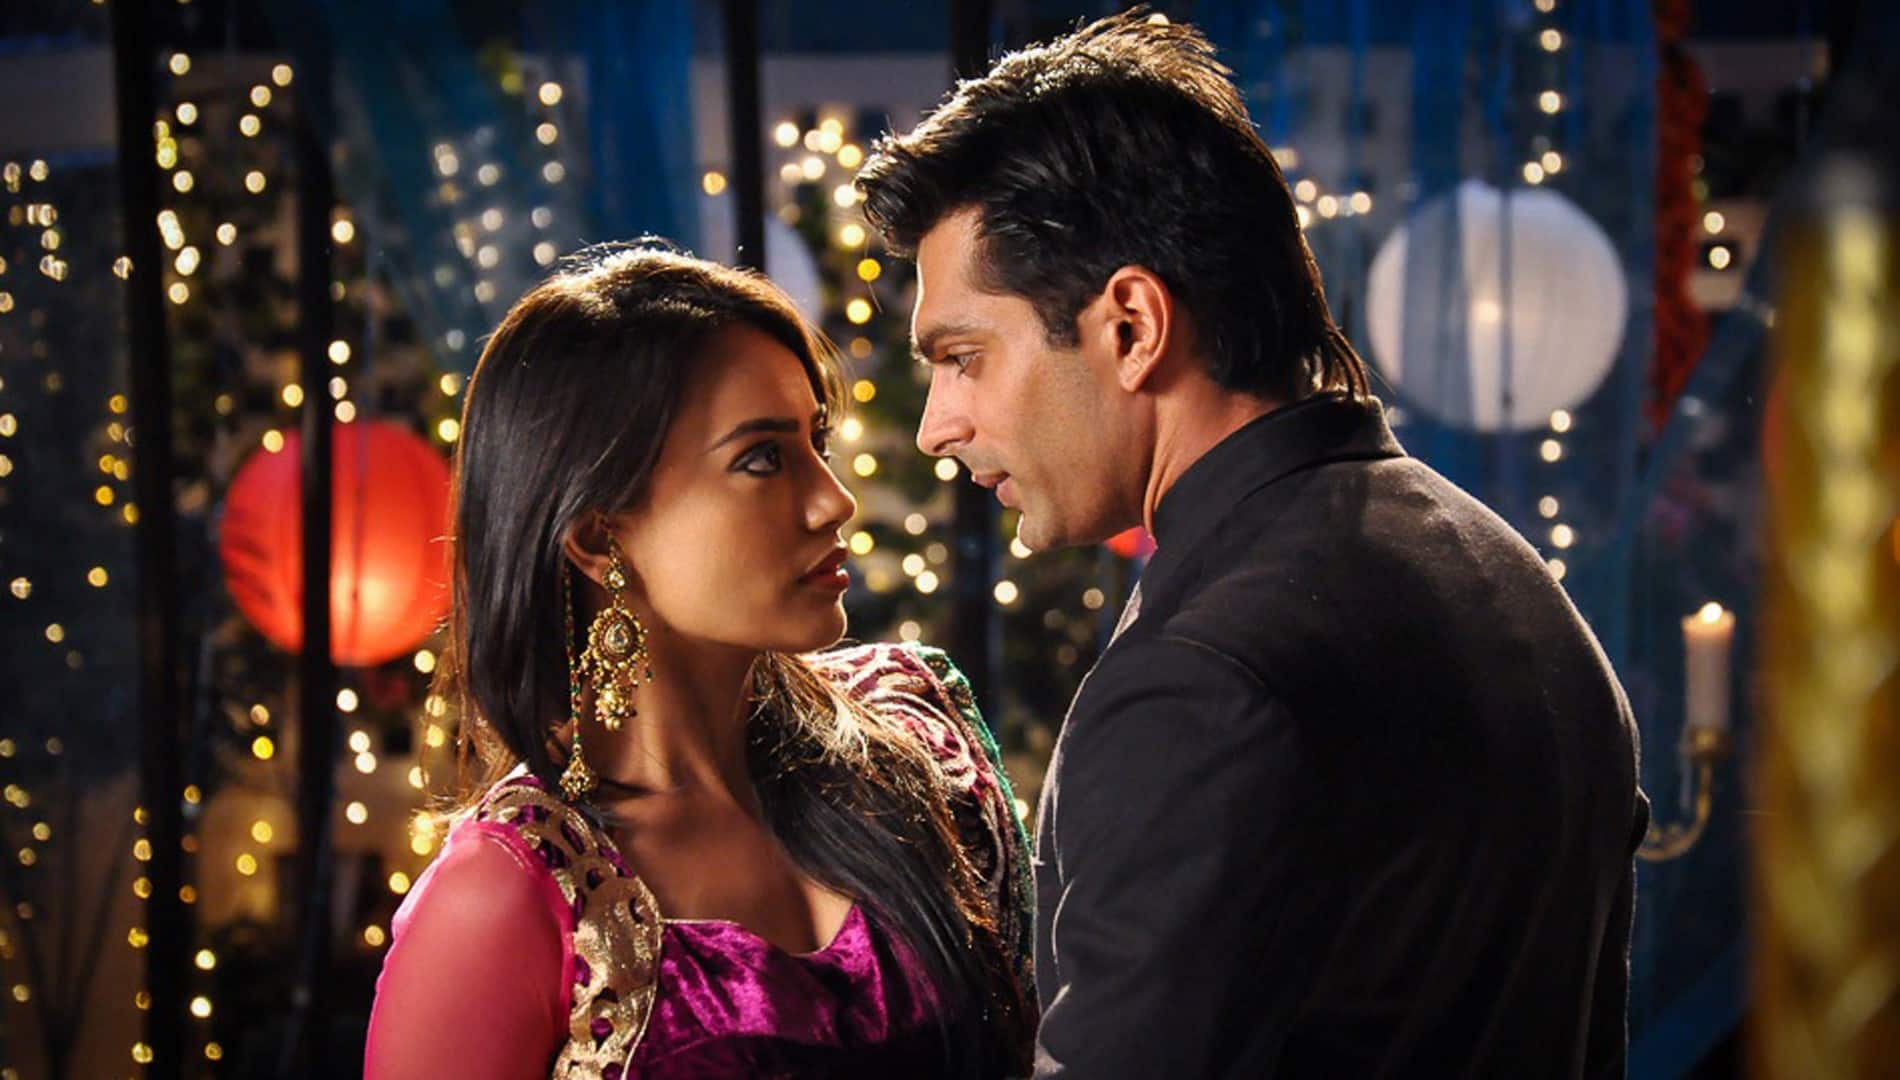 Surbhi Jyoti And Karan Singh Grover To Reunite After 8 Years For Qubool Hai 2.0? Here's What We Know